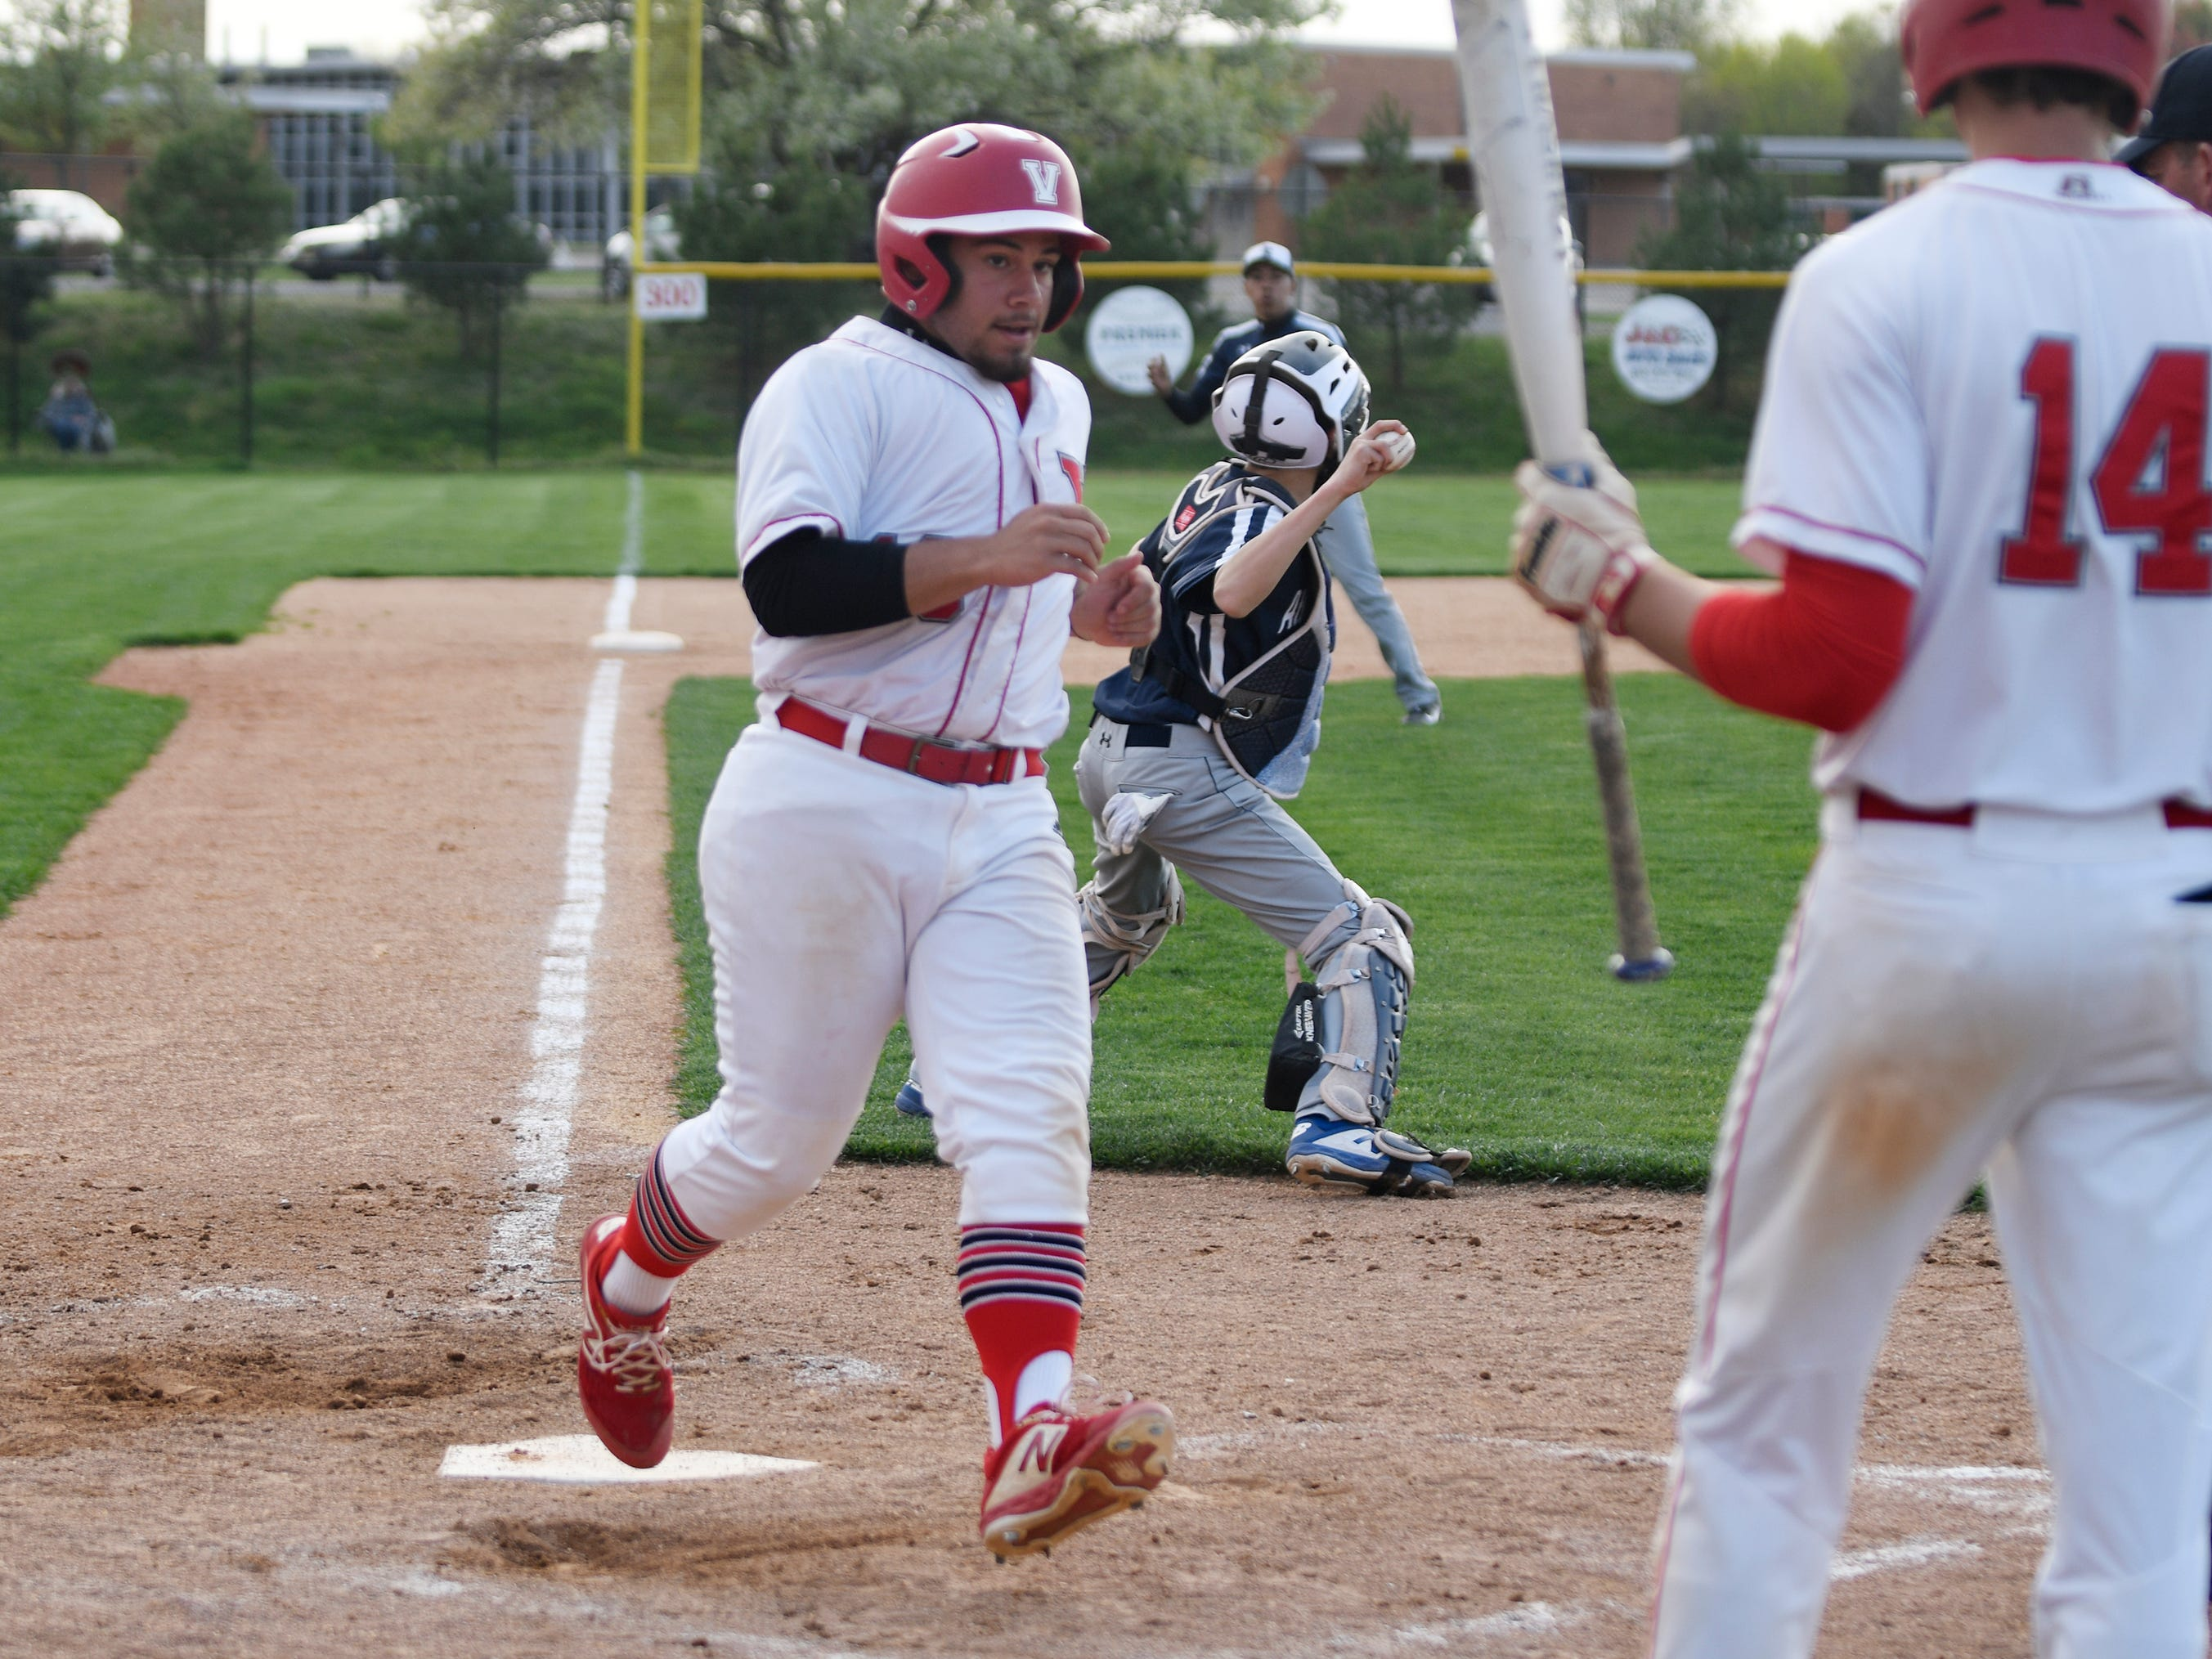 Vineland's Steven Gonzalez runs across home plate during a game against visiting Atlantic City on Wednesday. The Fighting Clan topped the Vikings 12-2.